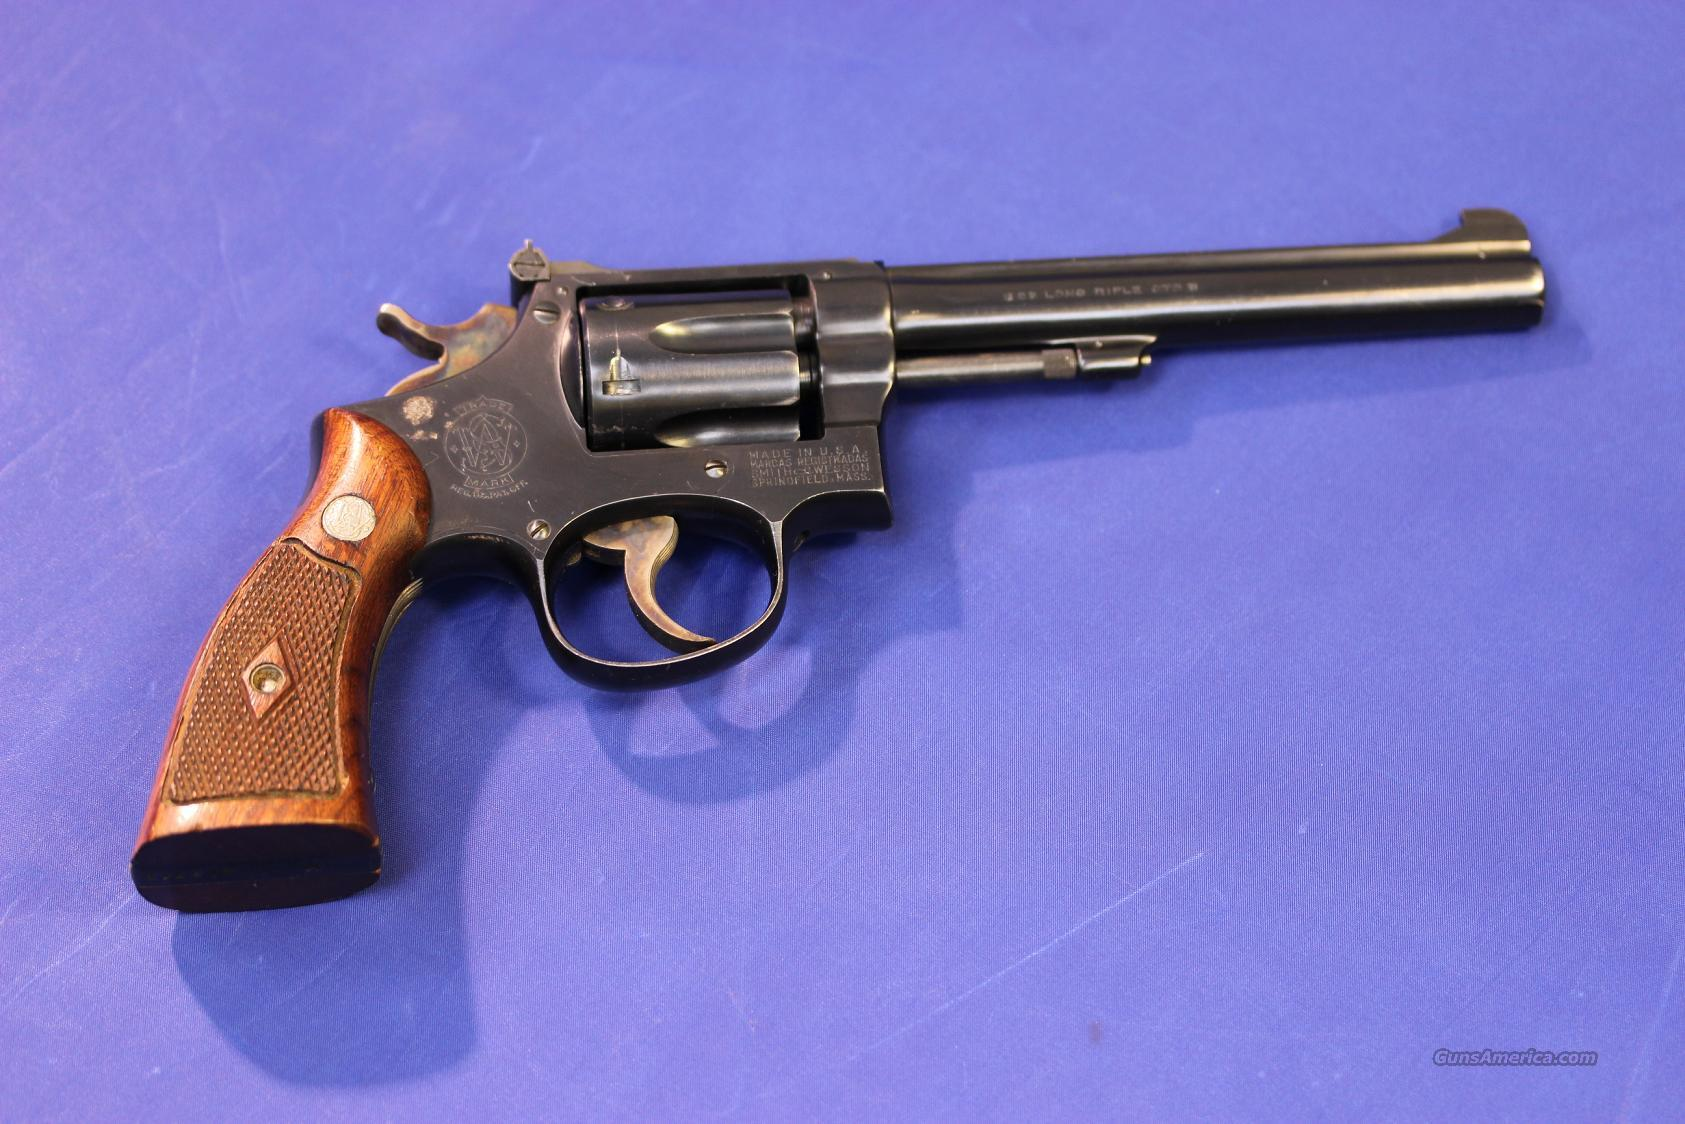 SMITH & WESSON PRE-17 K22 MASTERPIECE .22 LR  Guns > Pistols > Smith & Wesson Revolvers > Full Frame Revolver